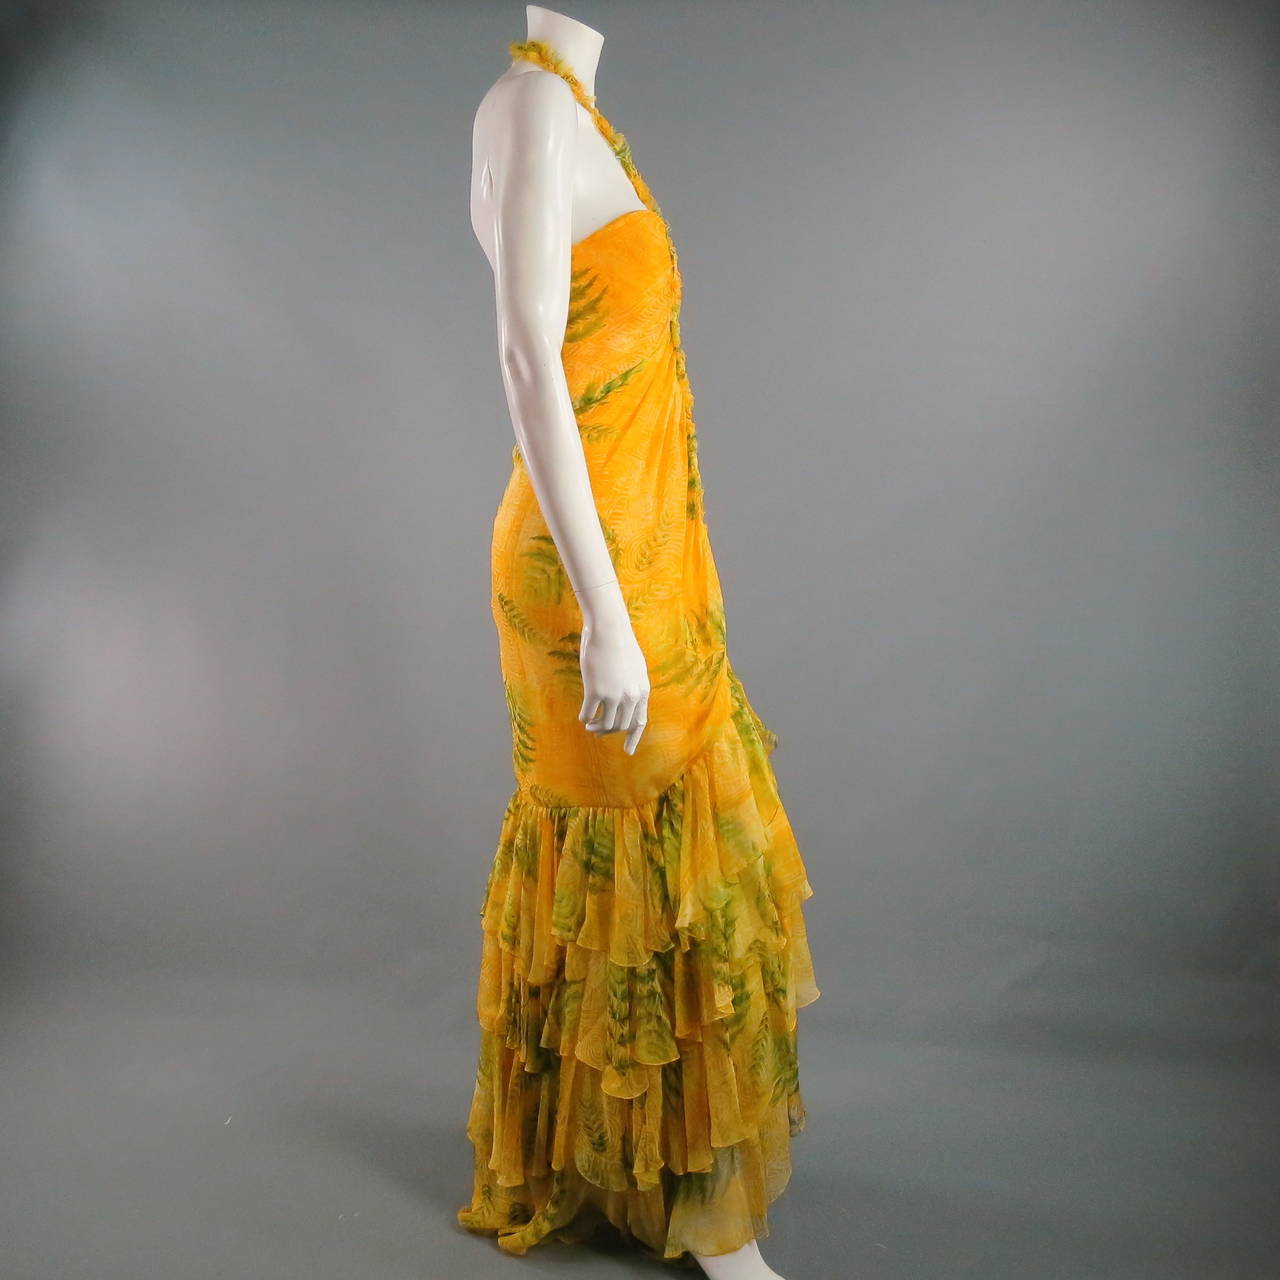 OSCAR DE LA RENTA Dress 8 Yellow Silk Straples Ruffled  Gown/Day/Evening Wear 4